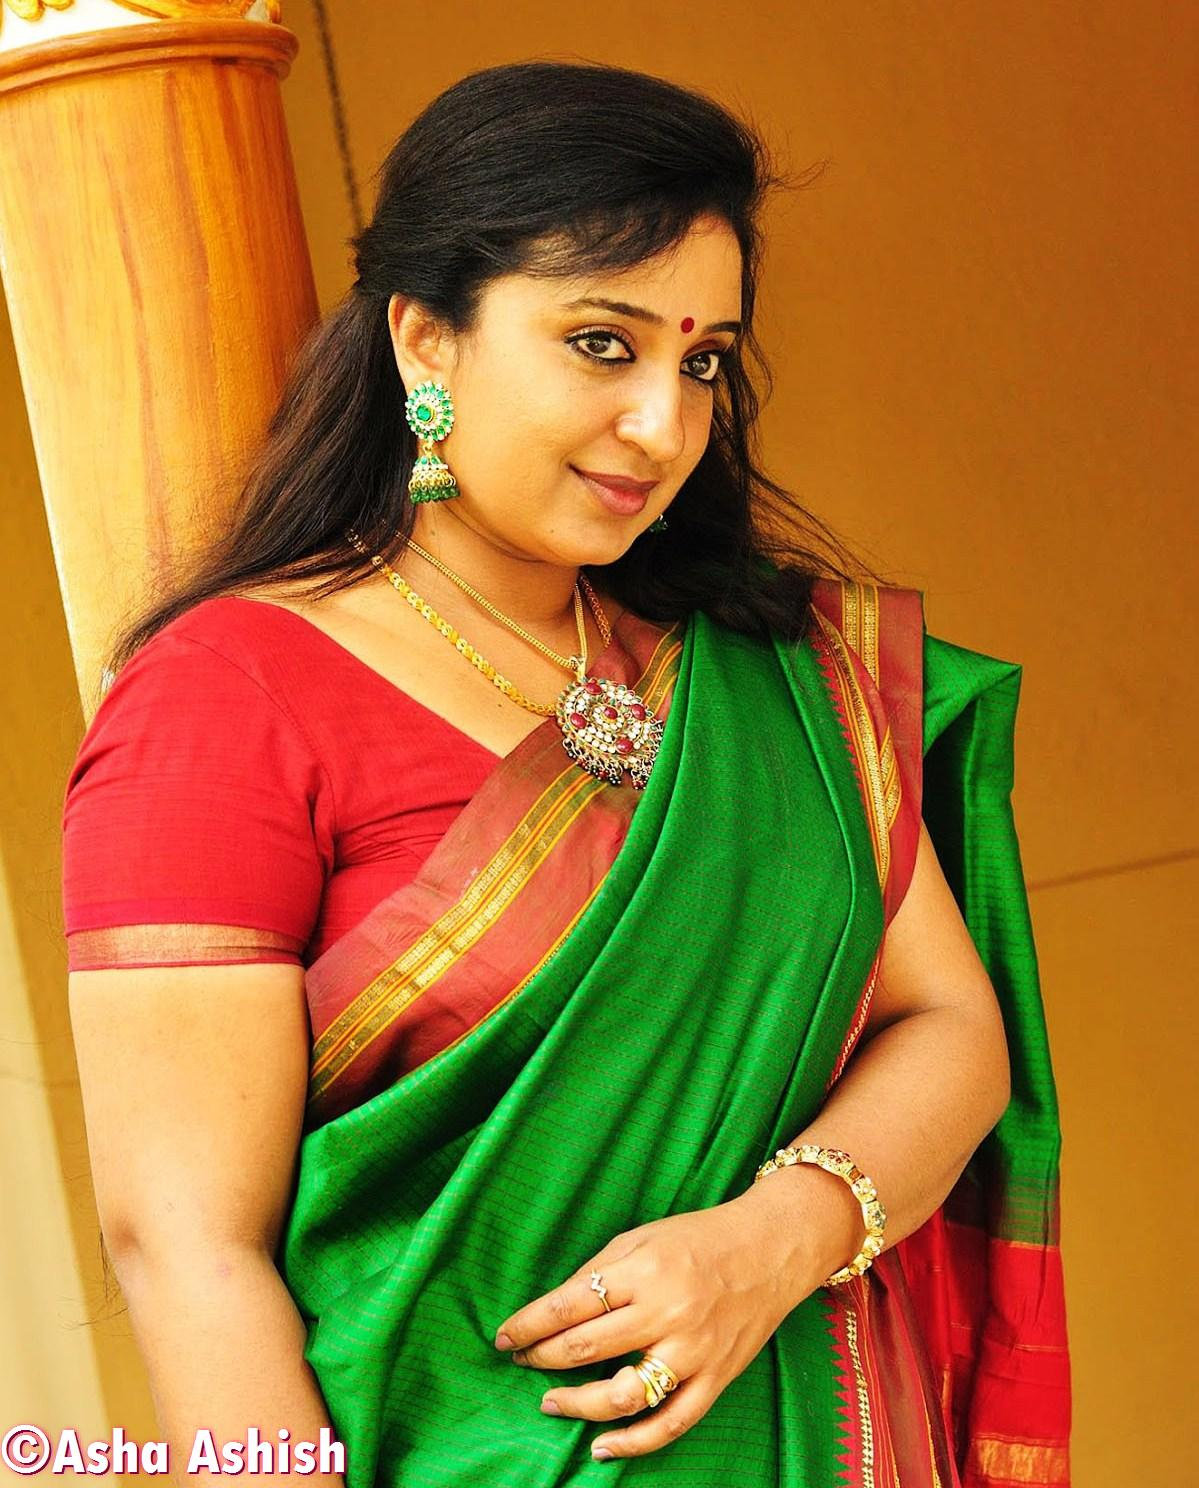 Latest Malayalam News: Asha Ashish: Malayalam TV Actress Sona Nair Latest Gallery